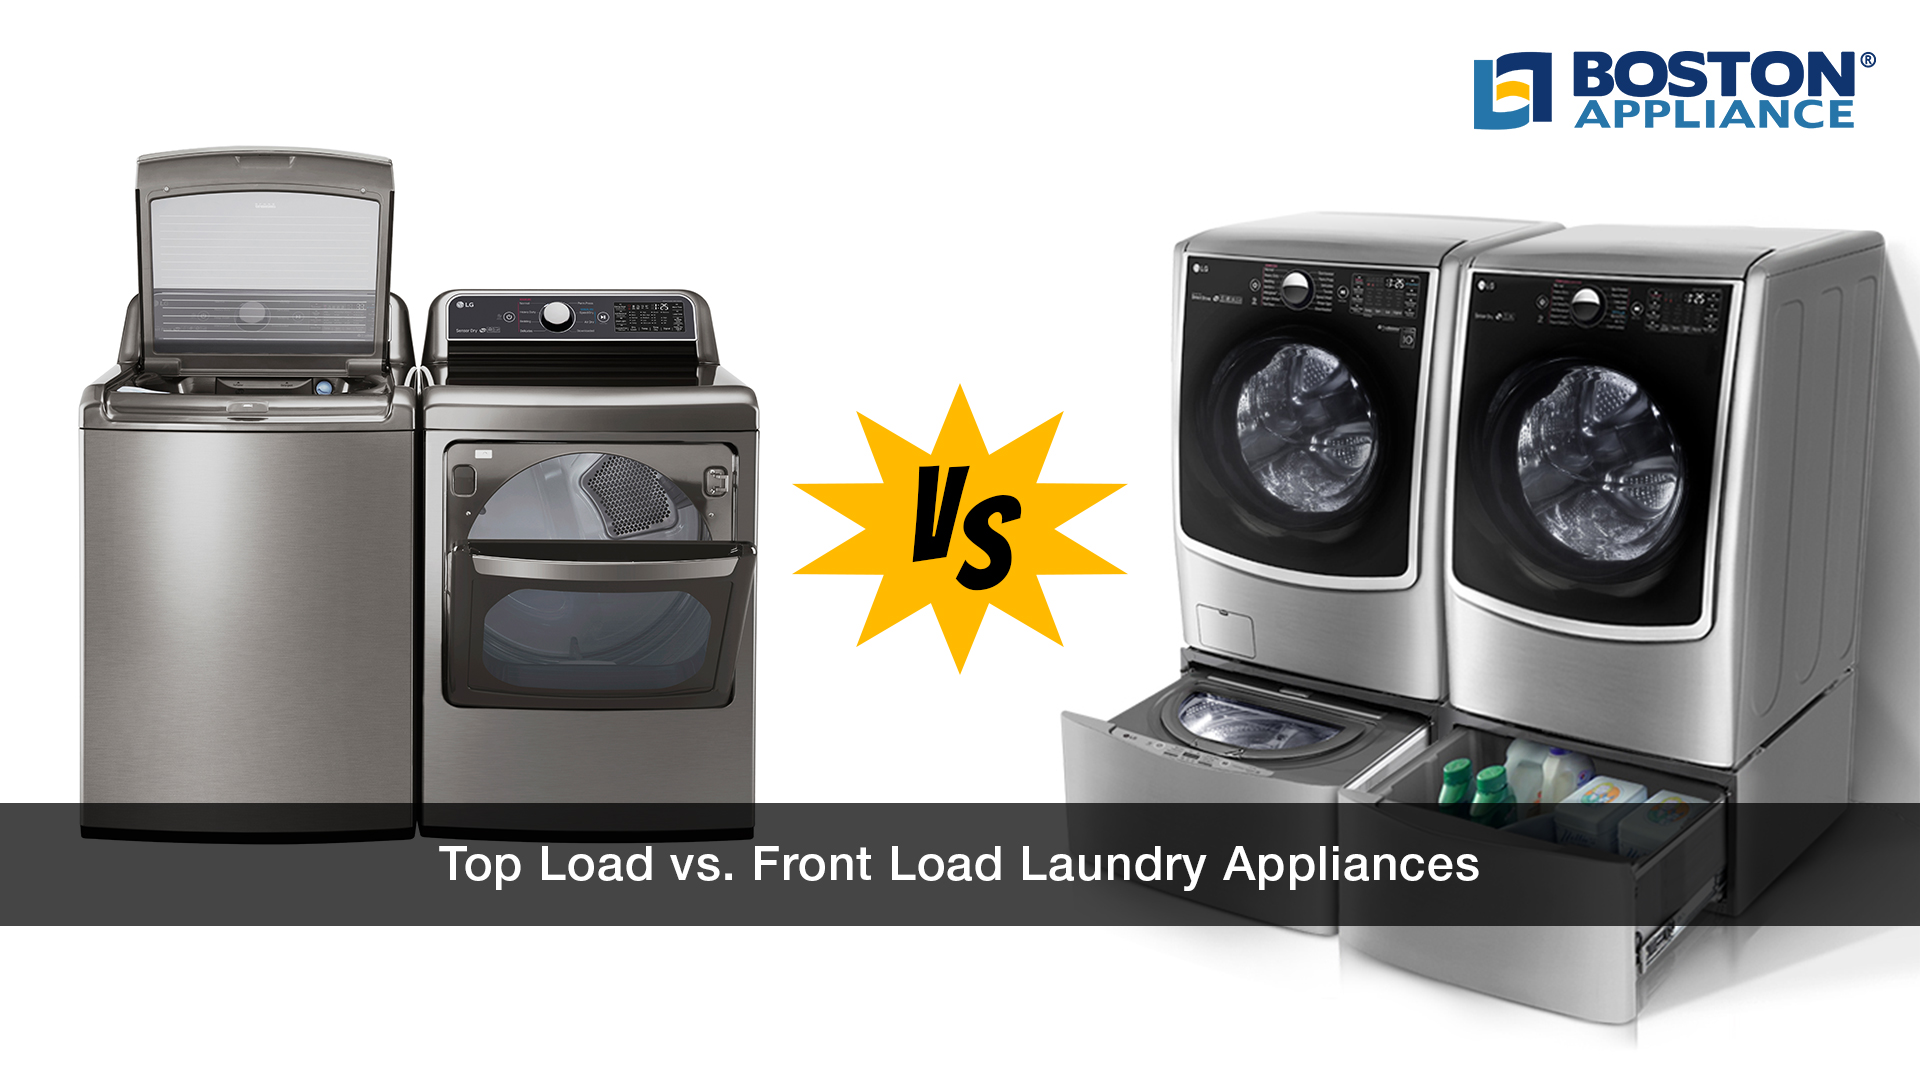 Top Load vs. Front Load Laundry